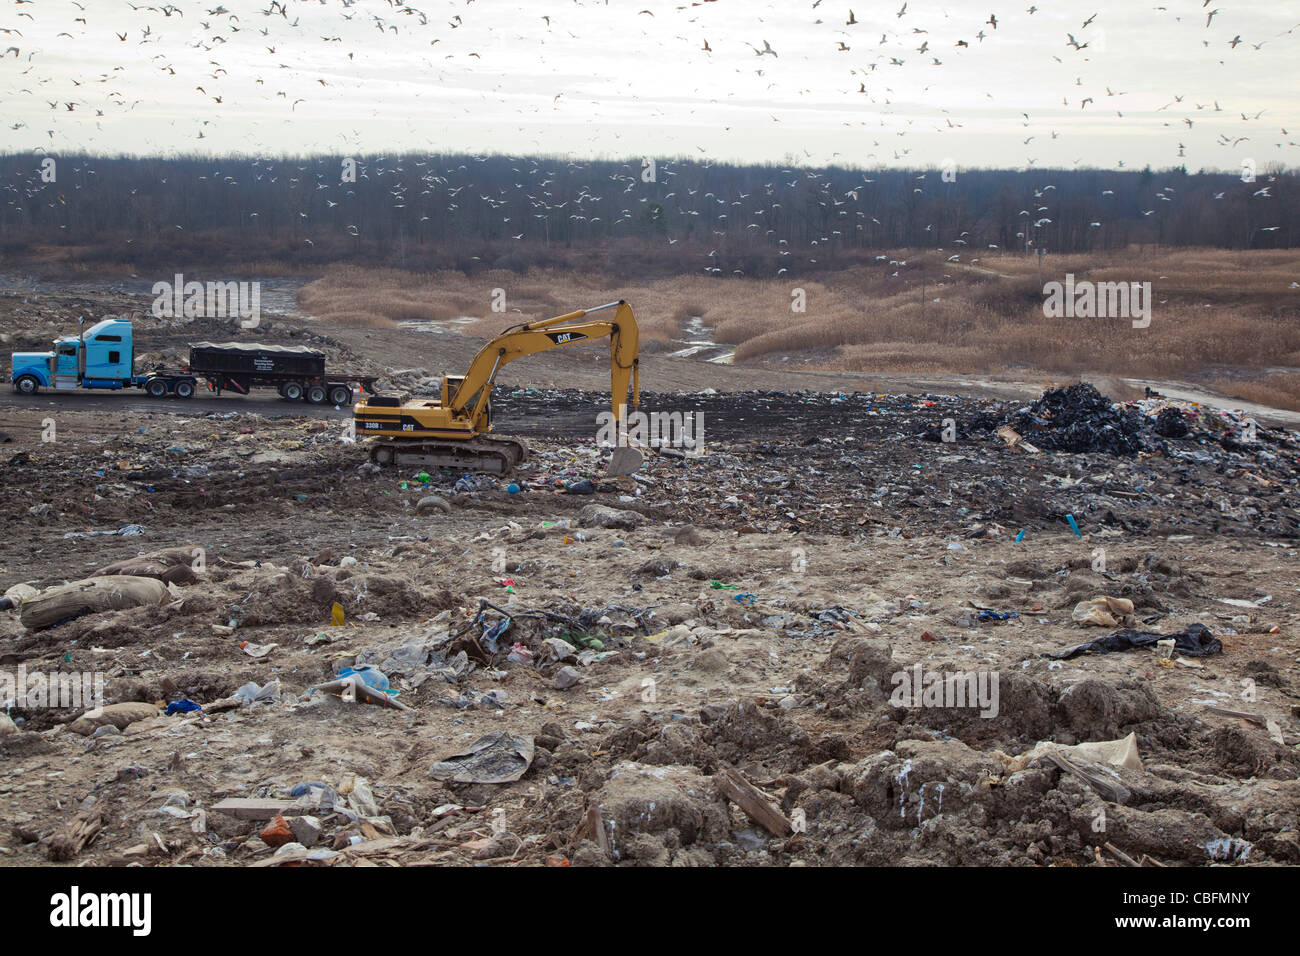 Smith's Creek, Michigan - A truck prepares to unload garbage at St. Clair County's Smith's Creek Landfill. - Stock Image